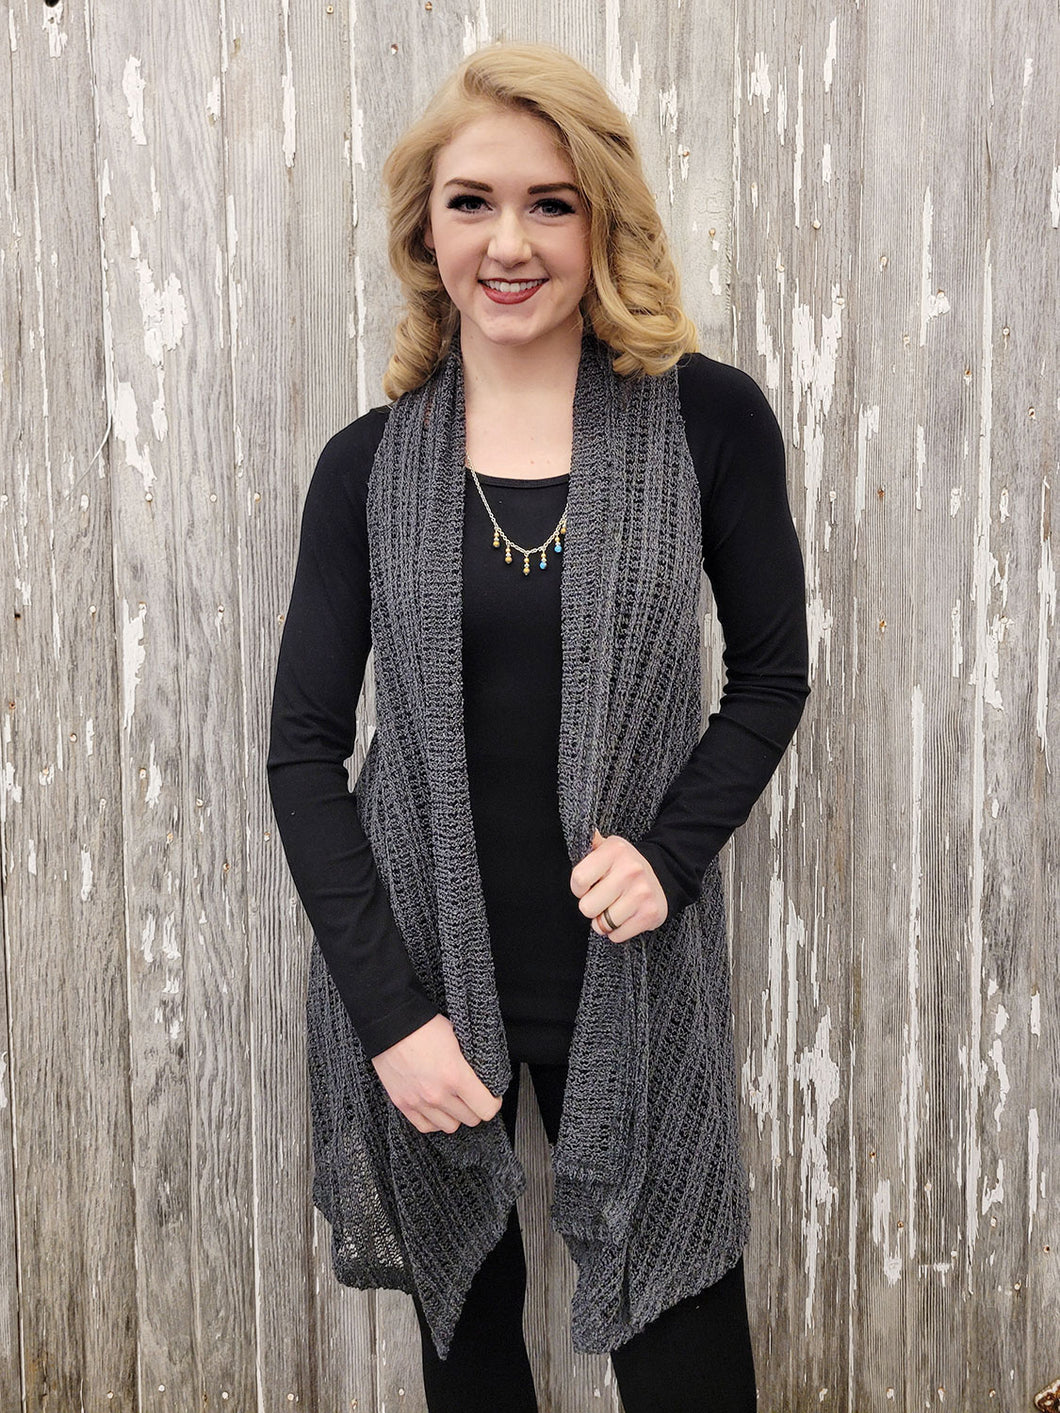 Woven Solid Sleeveless Cardigan - Charcoal